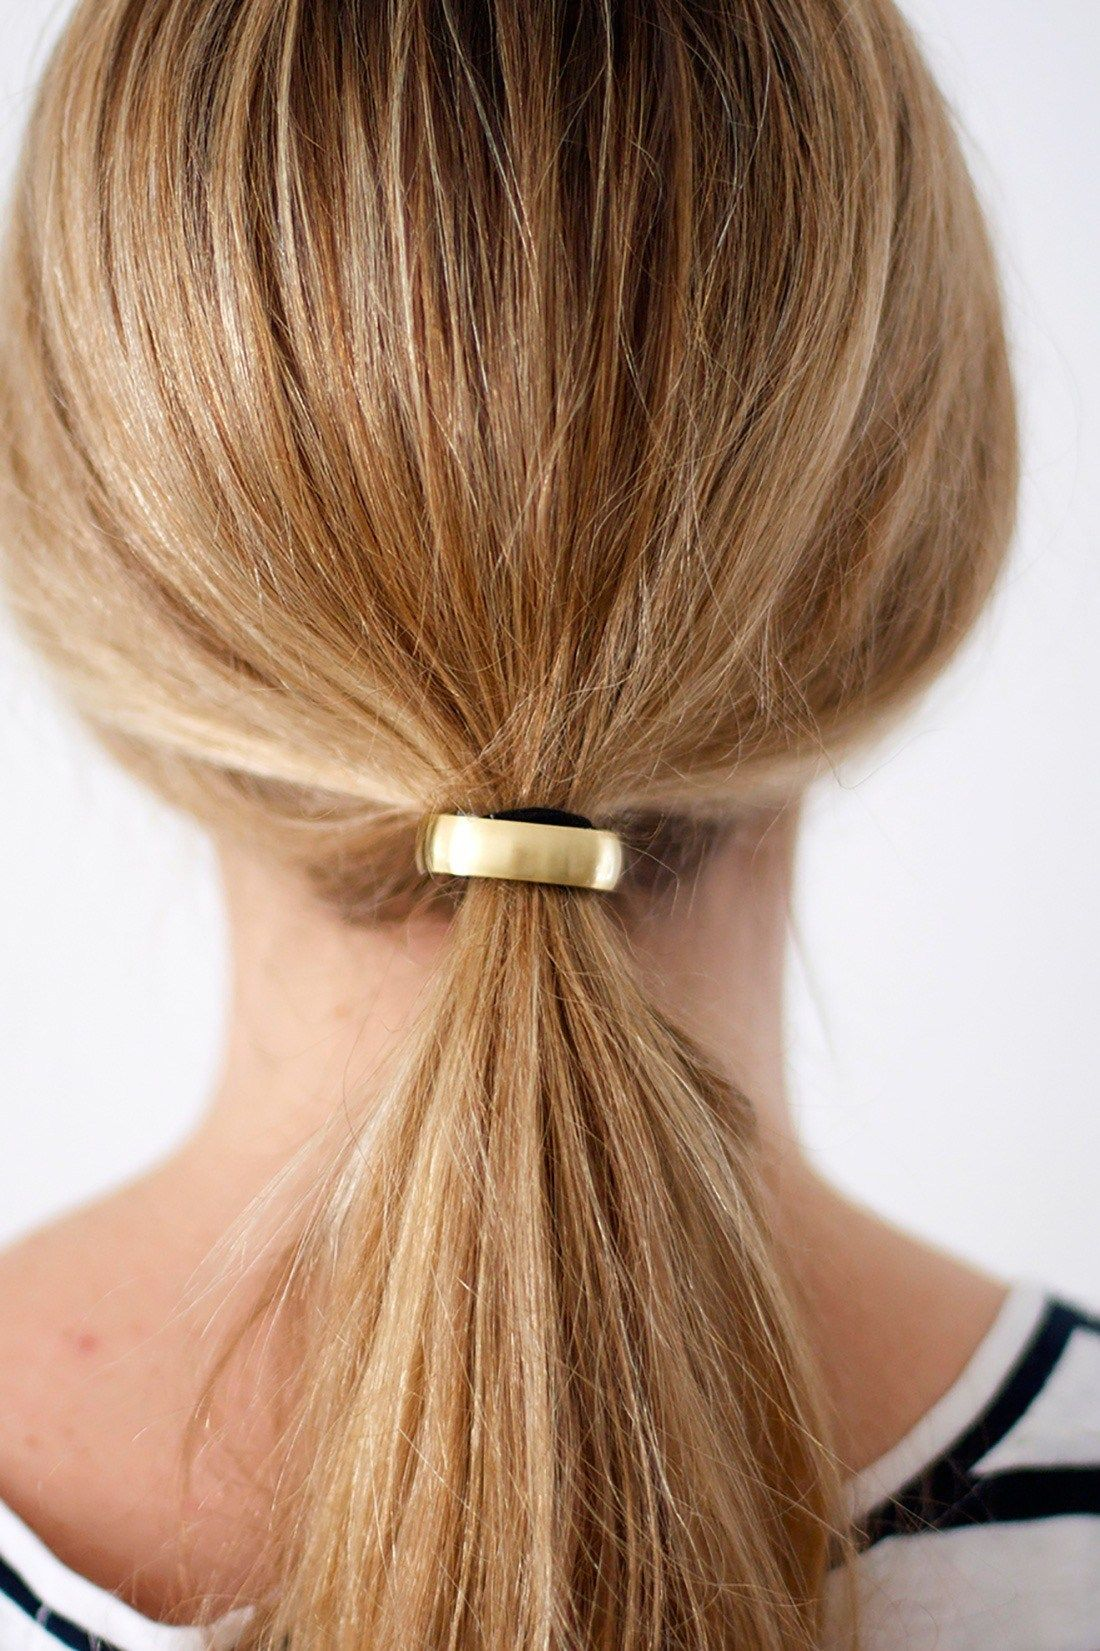 20 DIY Hair Accessories to Try This Summer